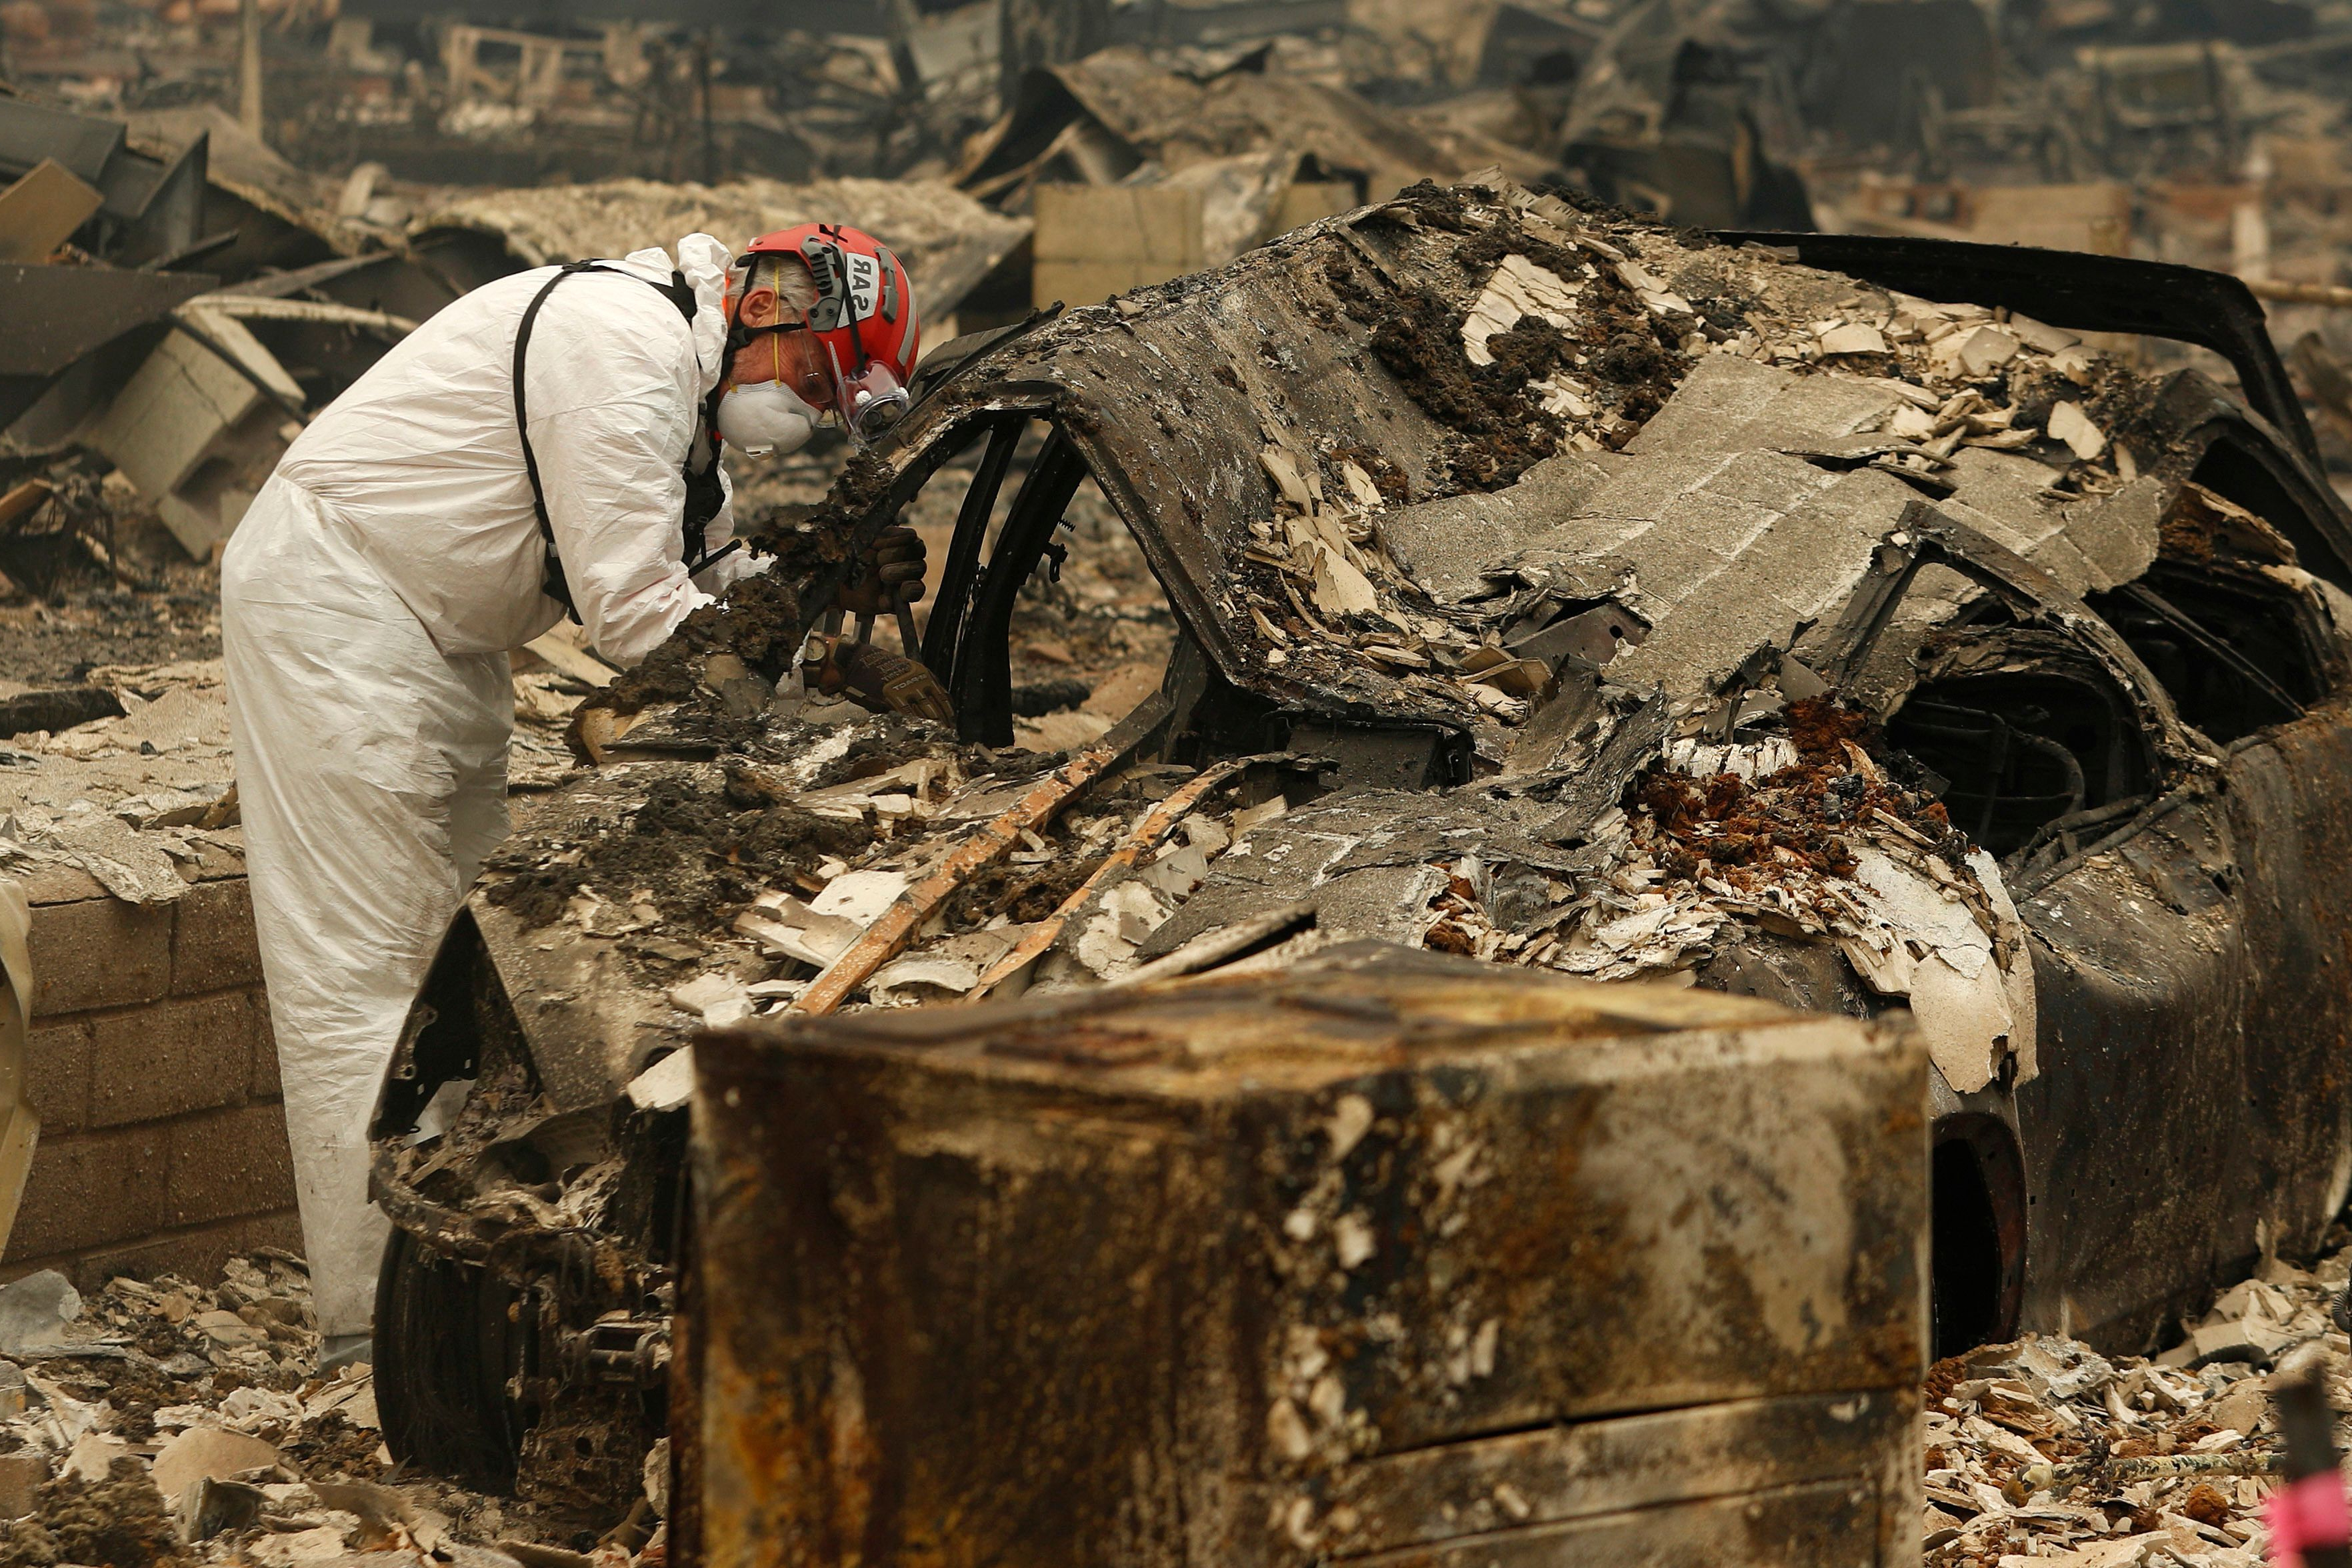 US: California fire evacuees could find bodies in charred homes